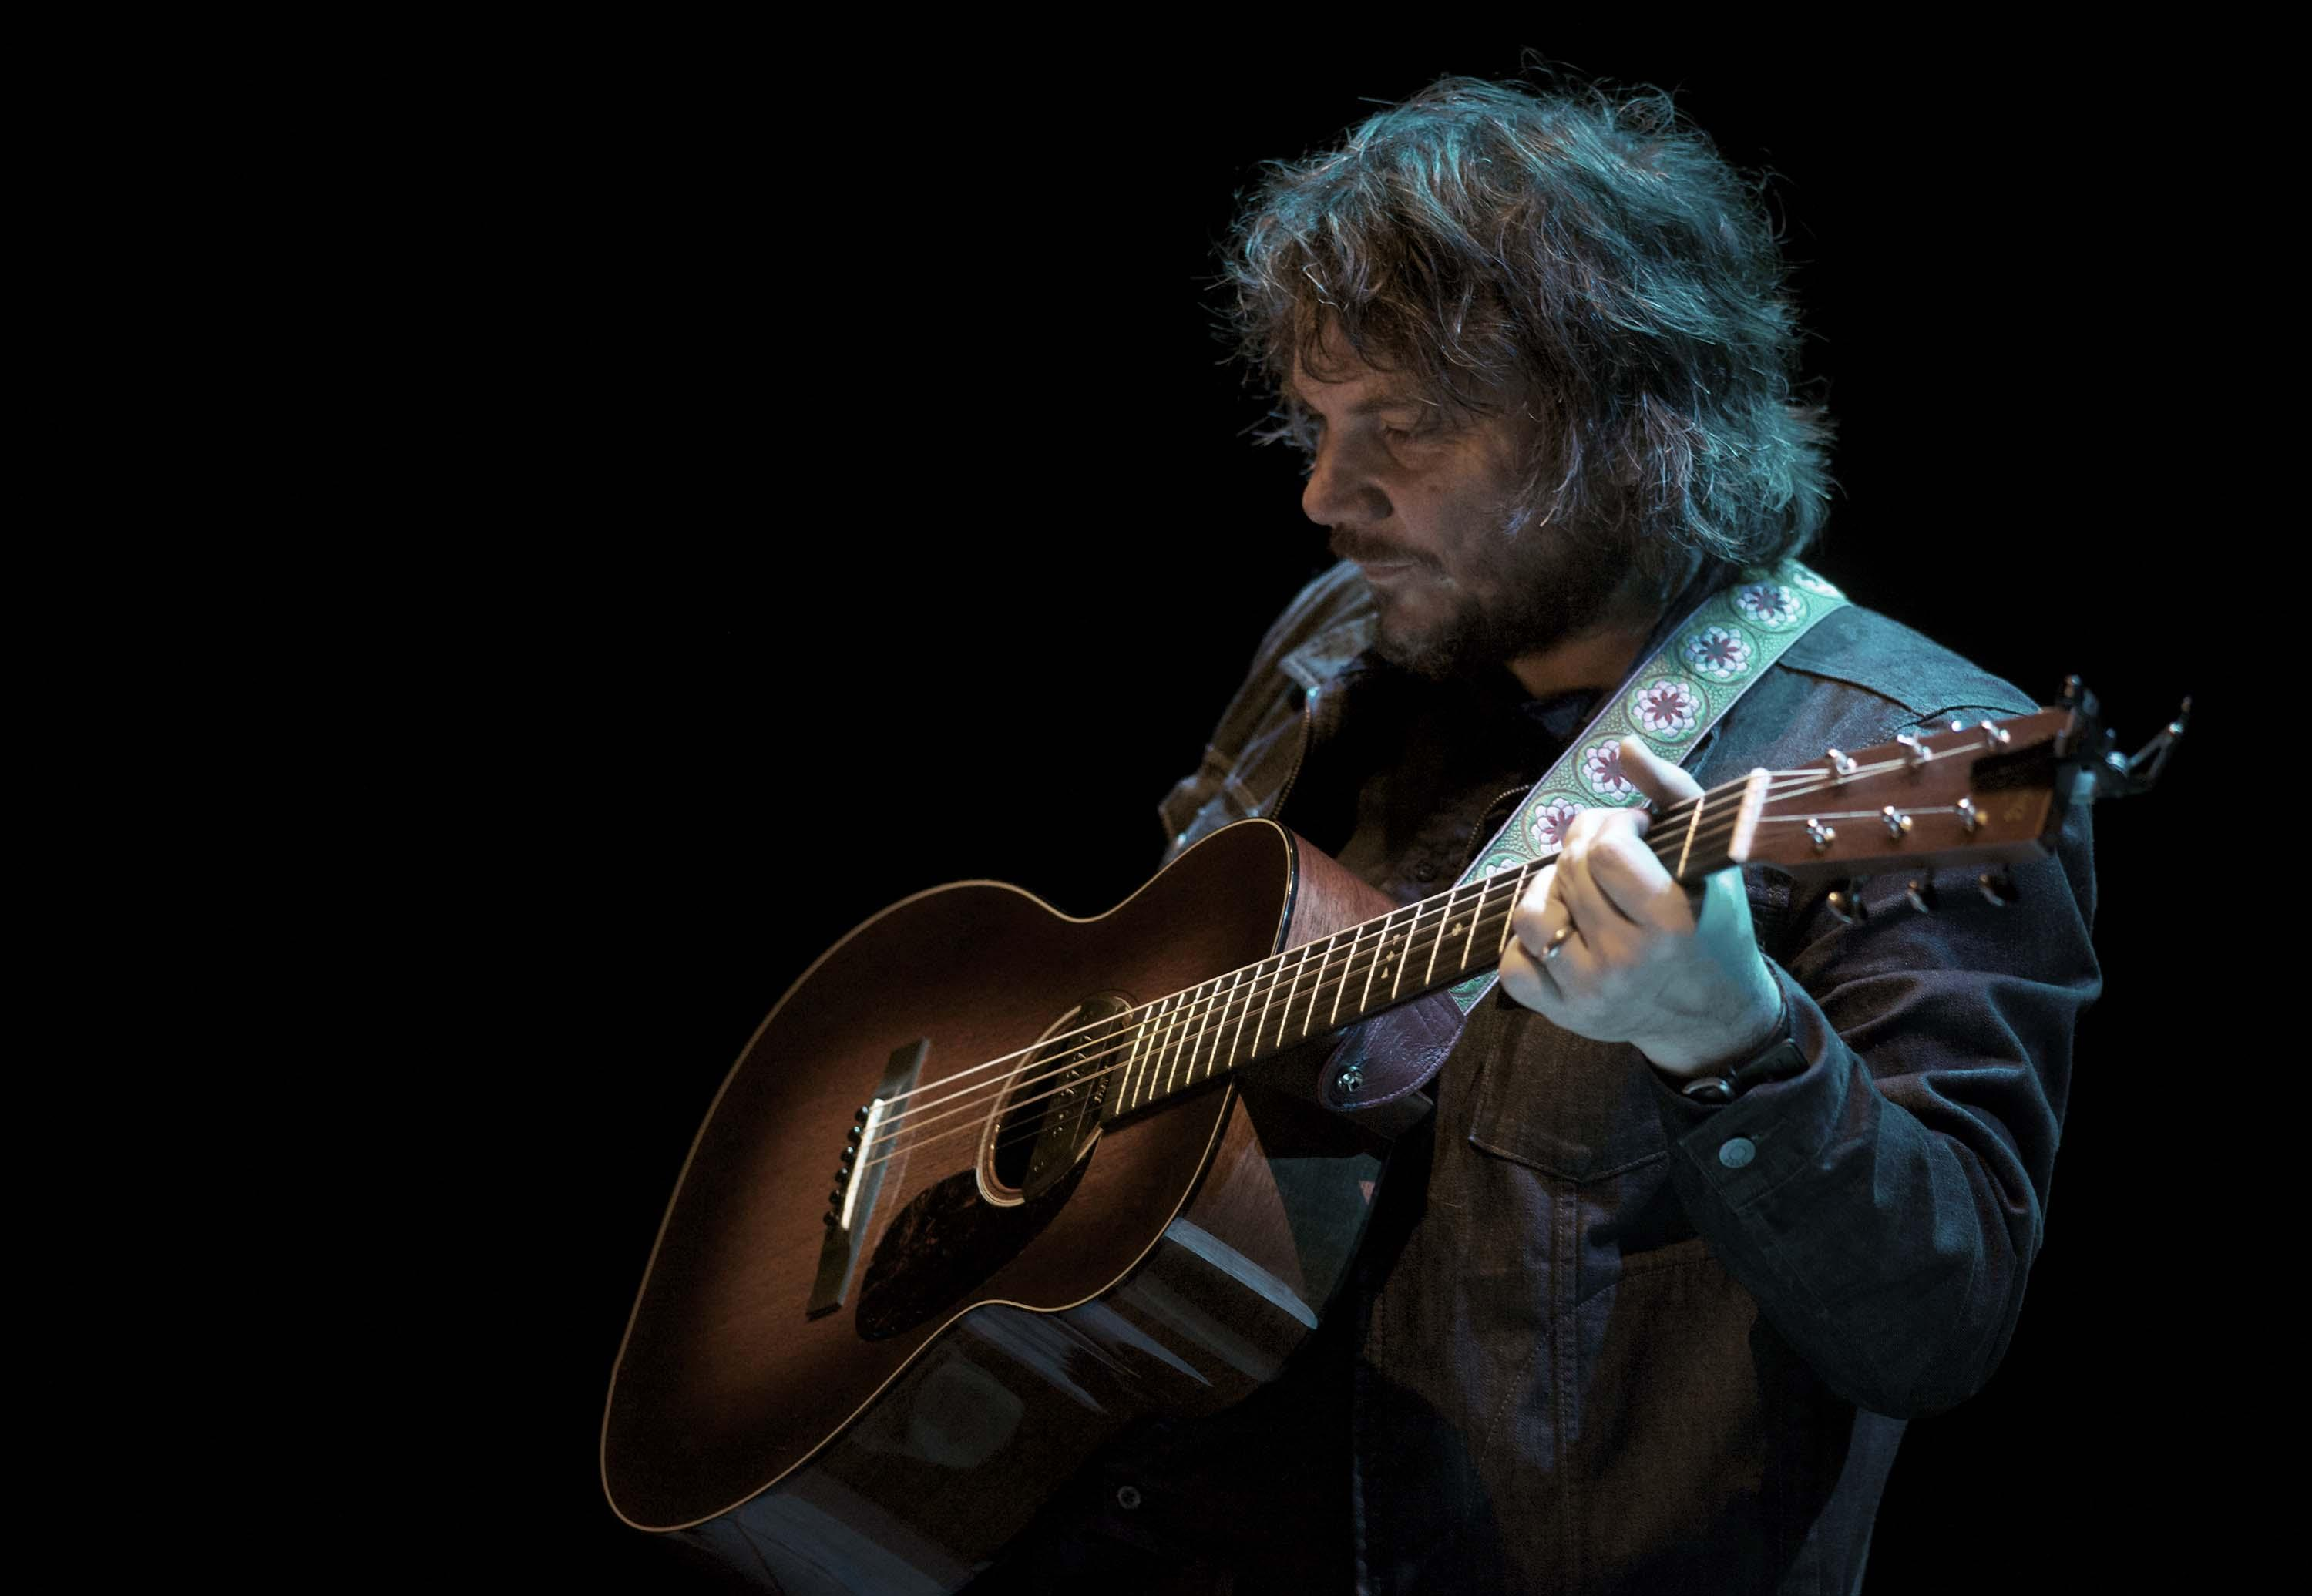 A man with long shaggy hair wearing a black denim jacket holds a wooden acoustic guitar.